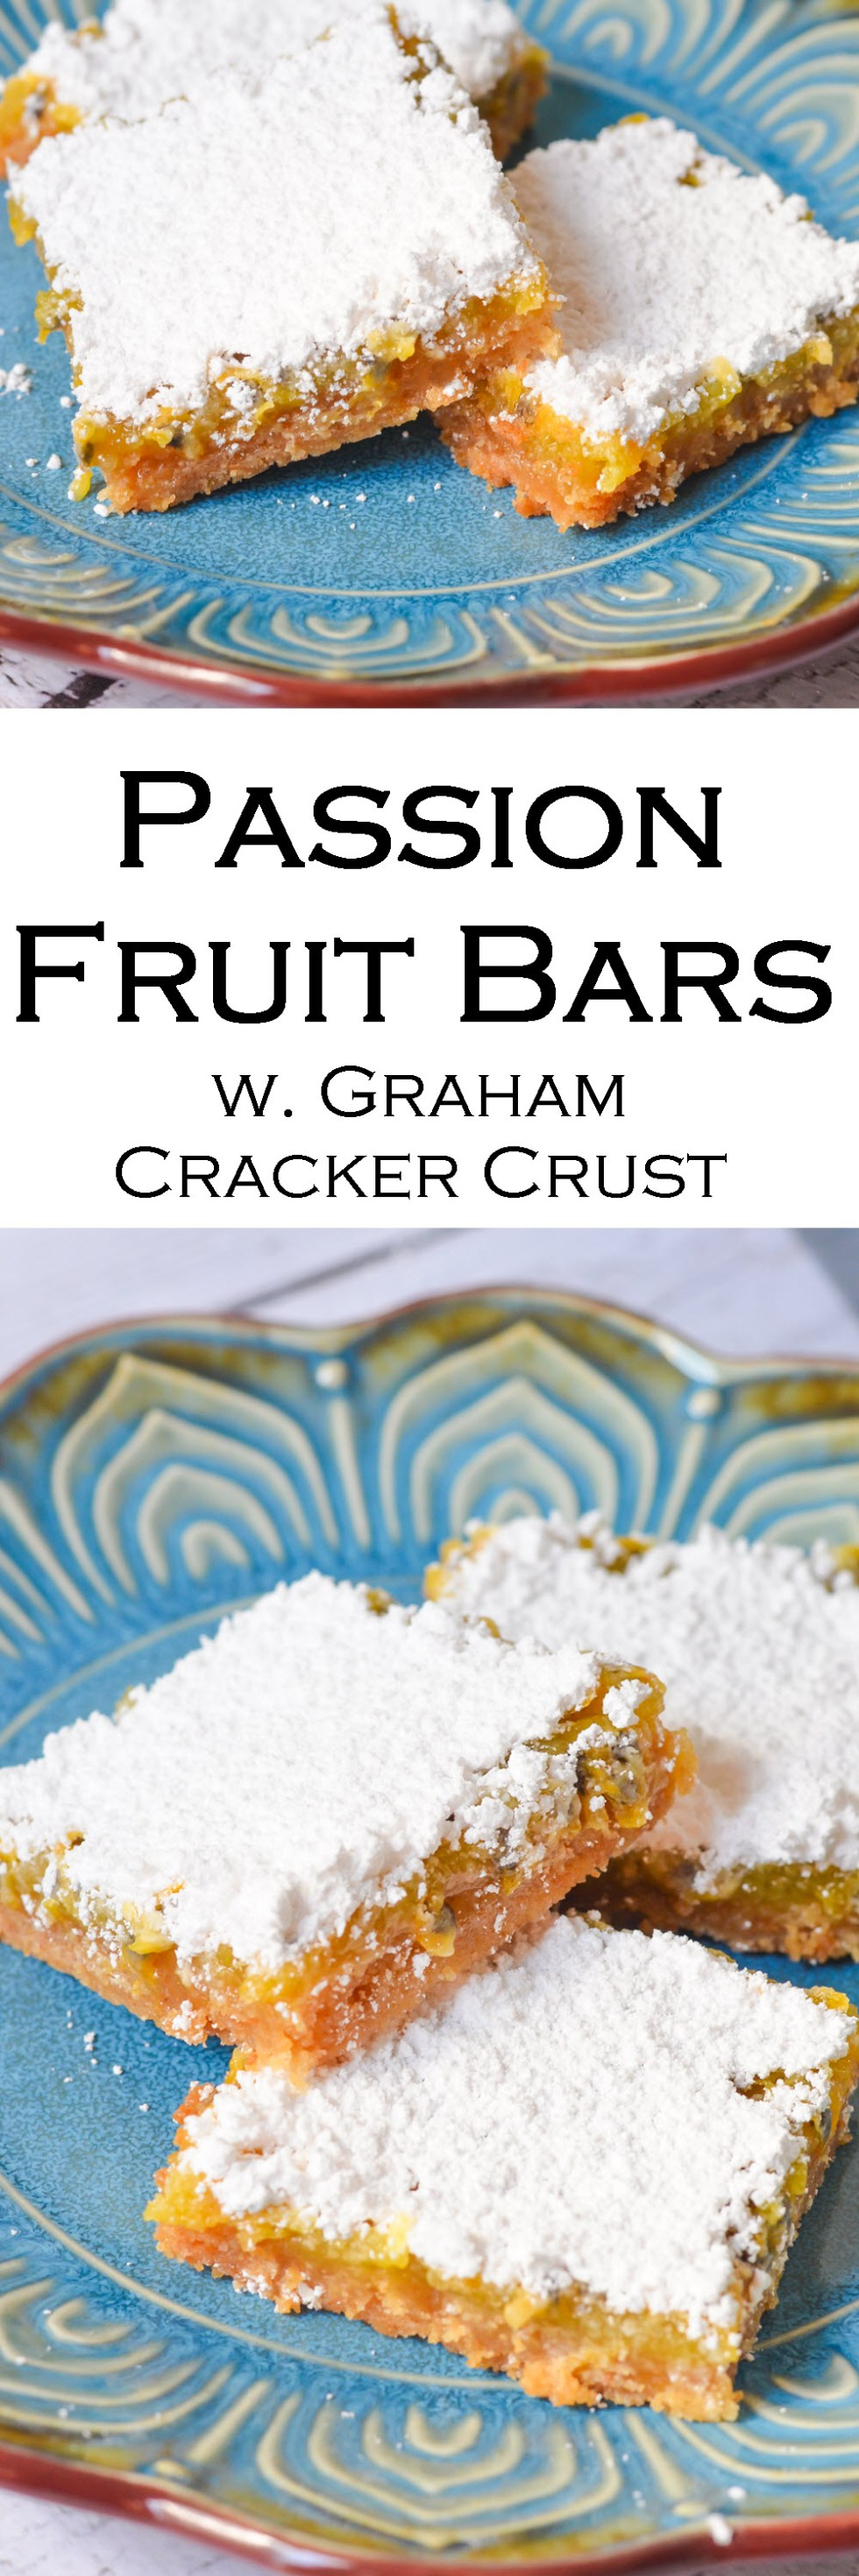 Passion Fruit Bars w. Graham Cracker Crust